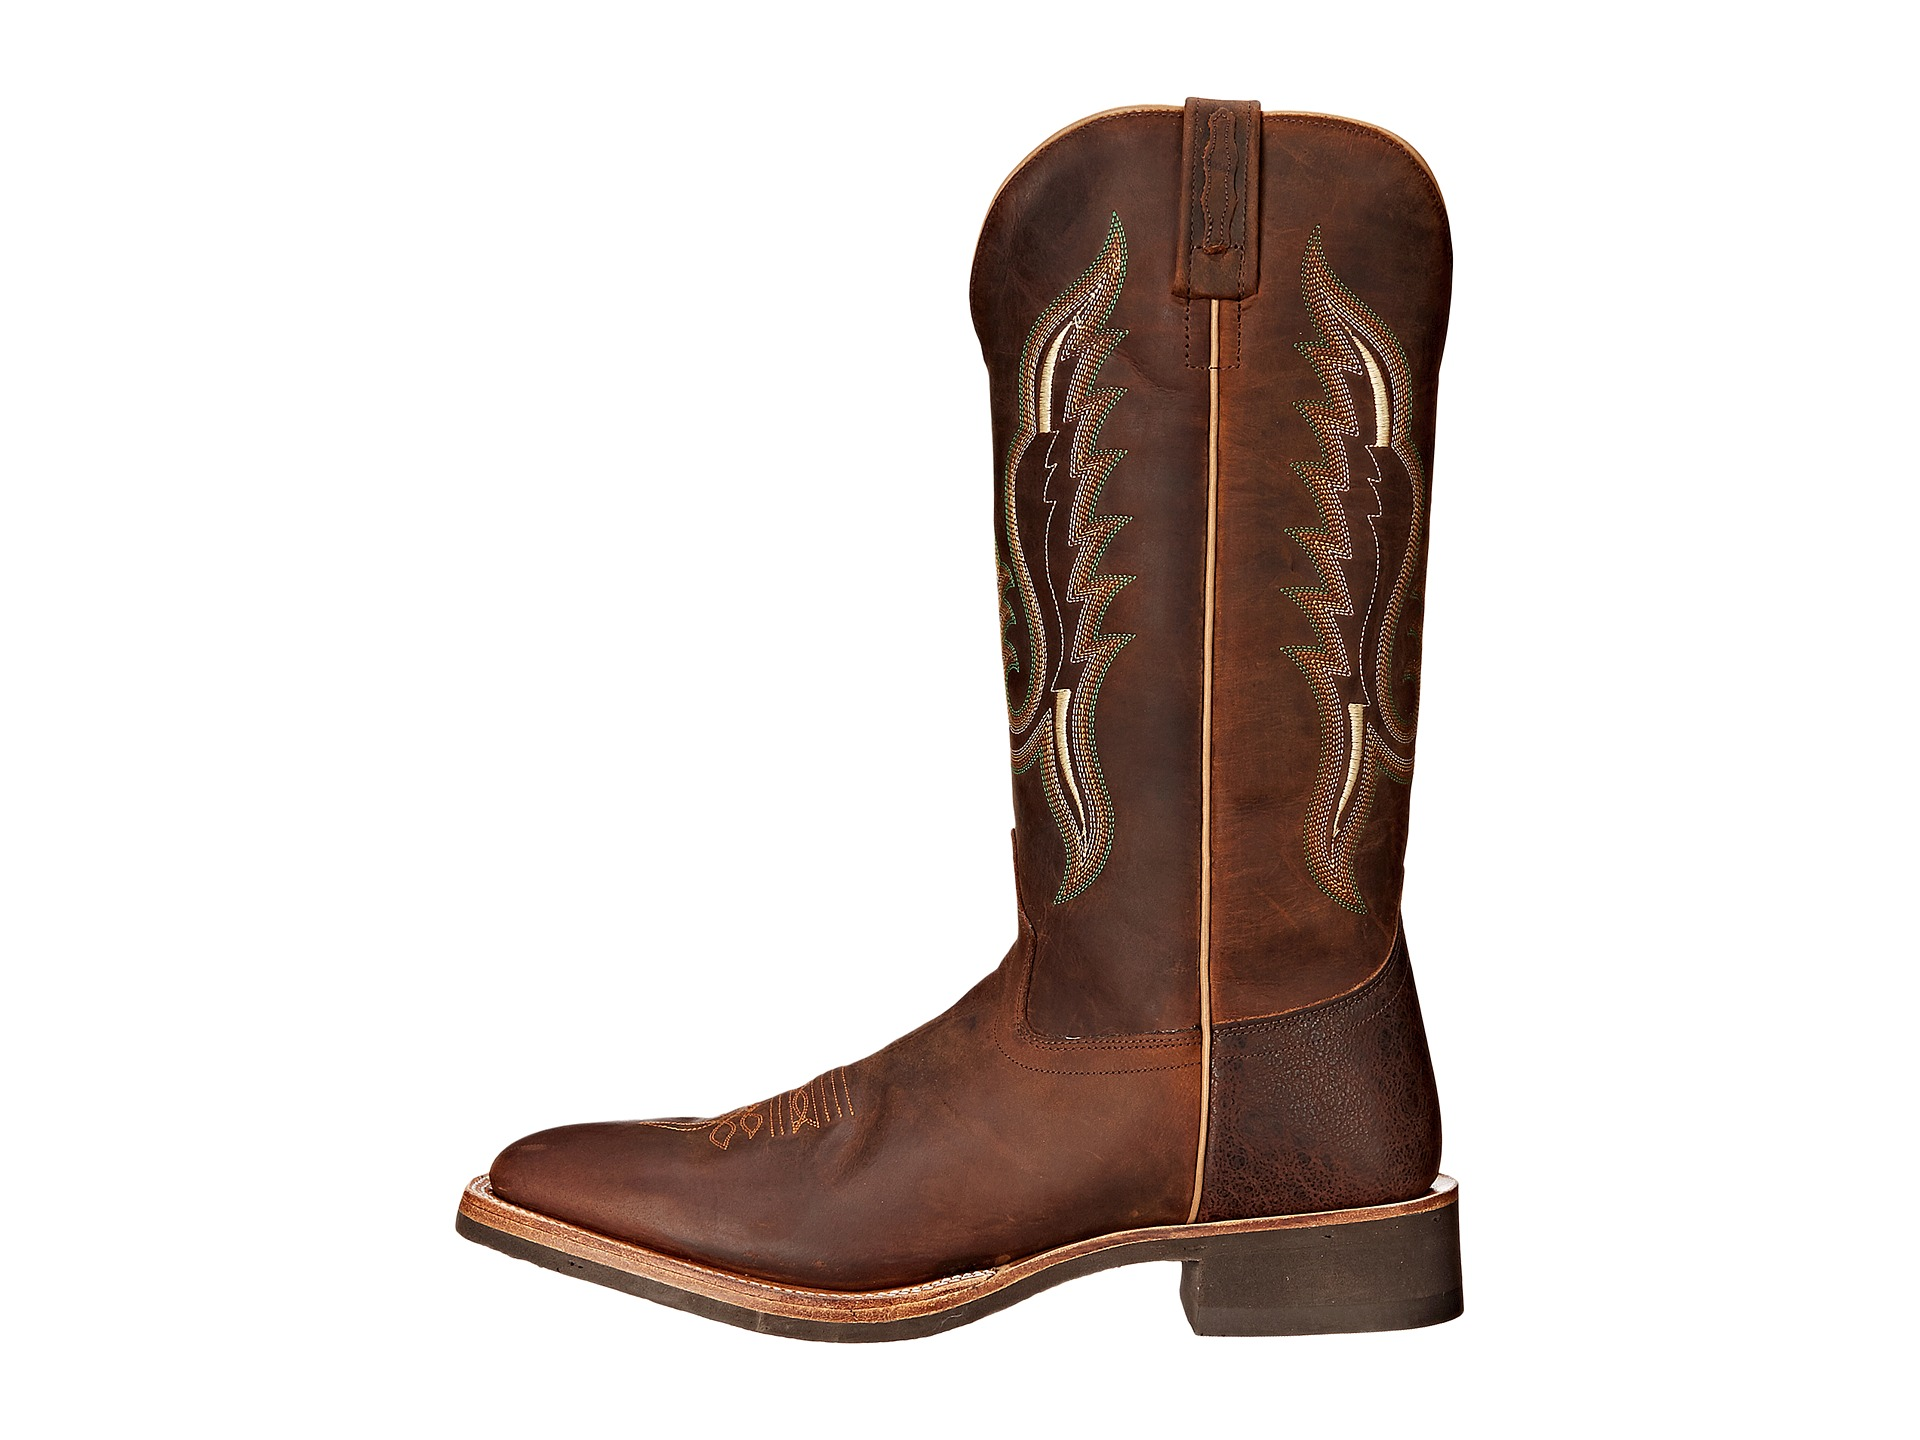 west boots bsm1860 at zappos